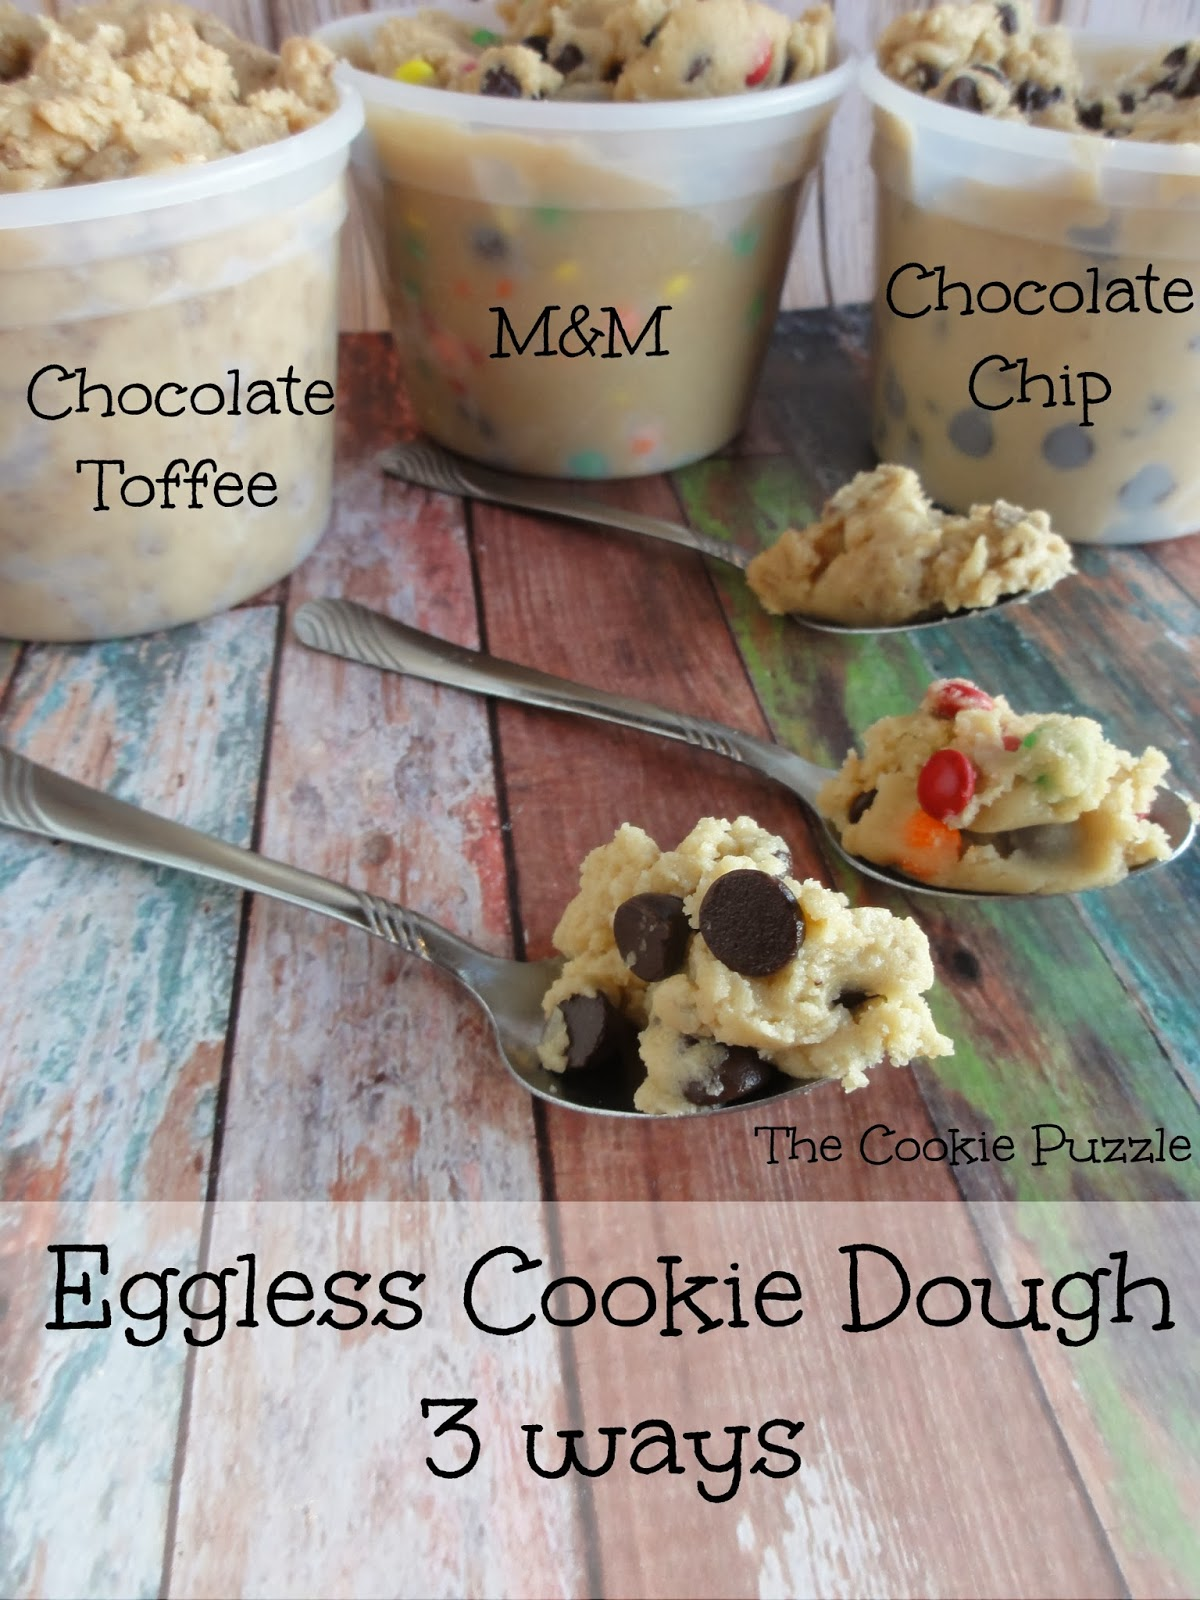 Cookie Dough for Eating